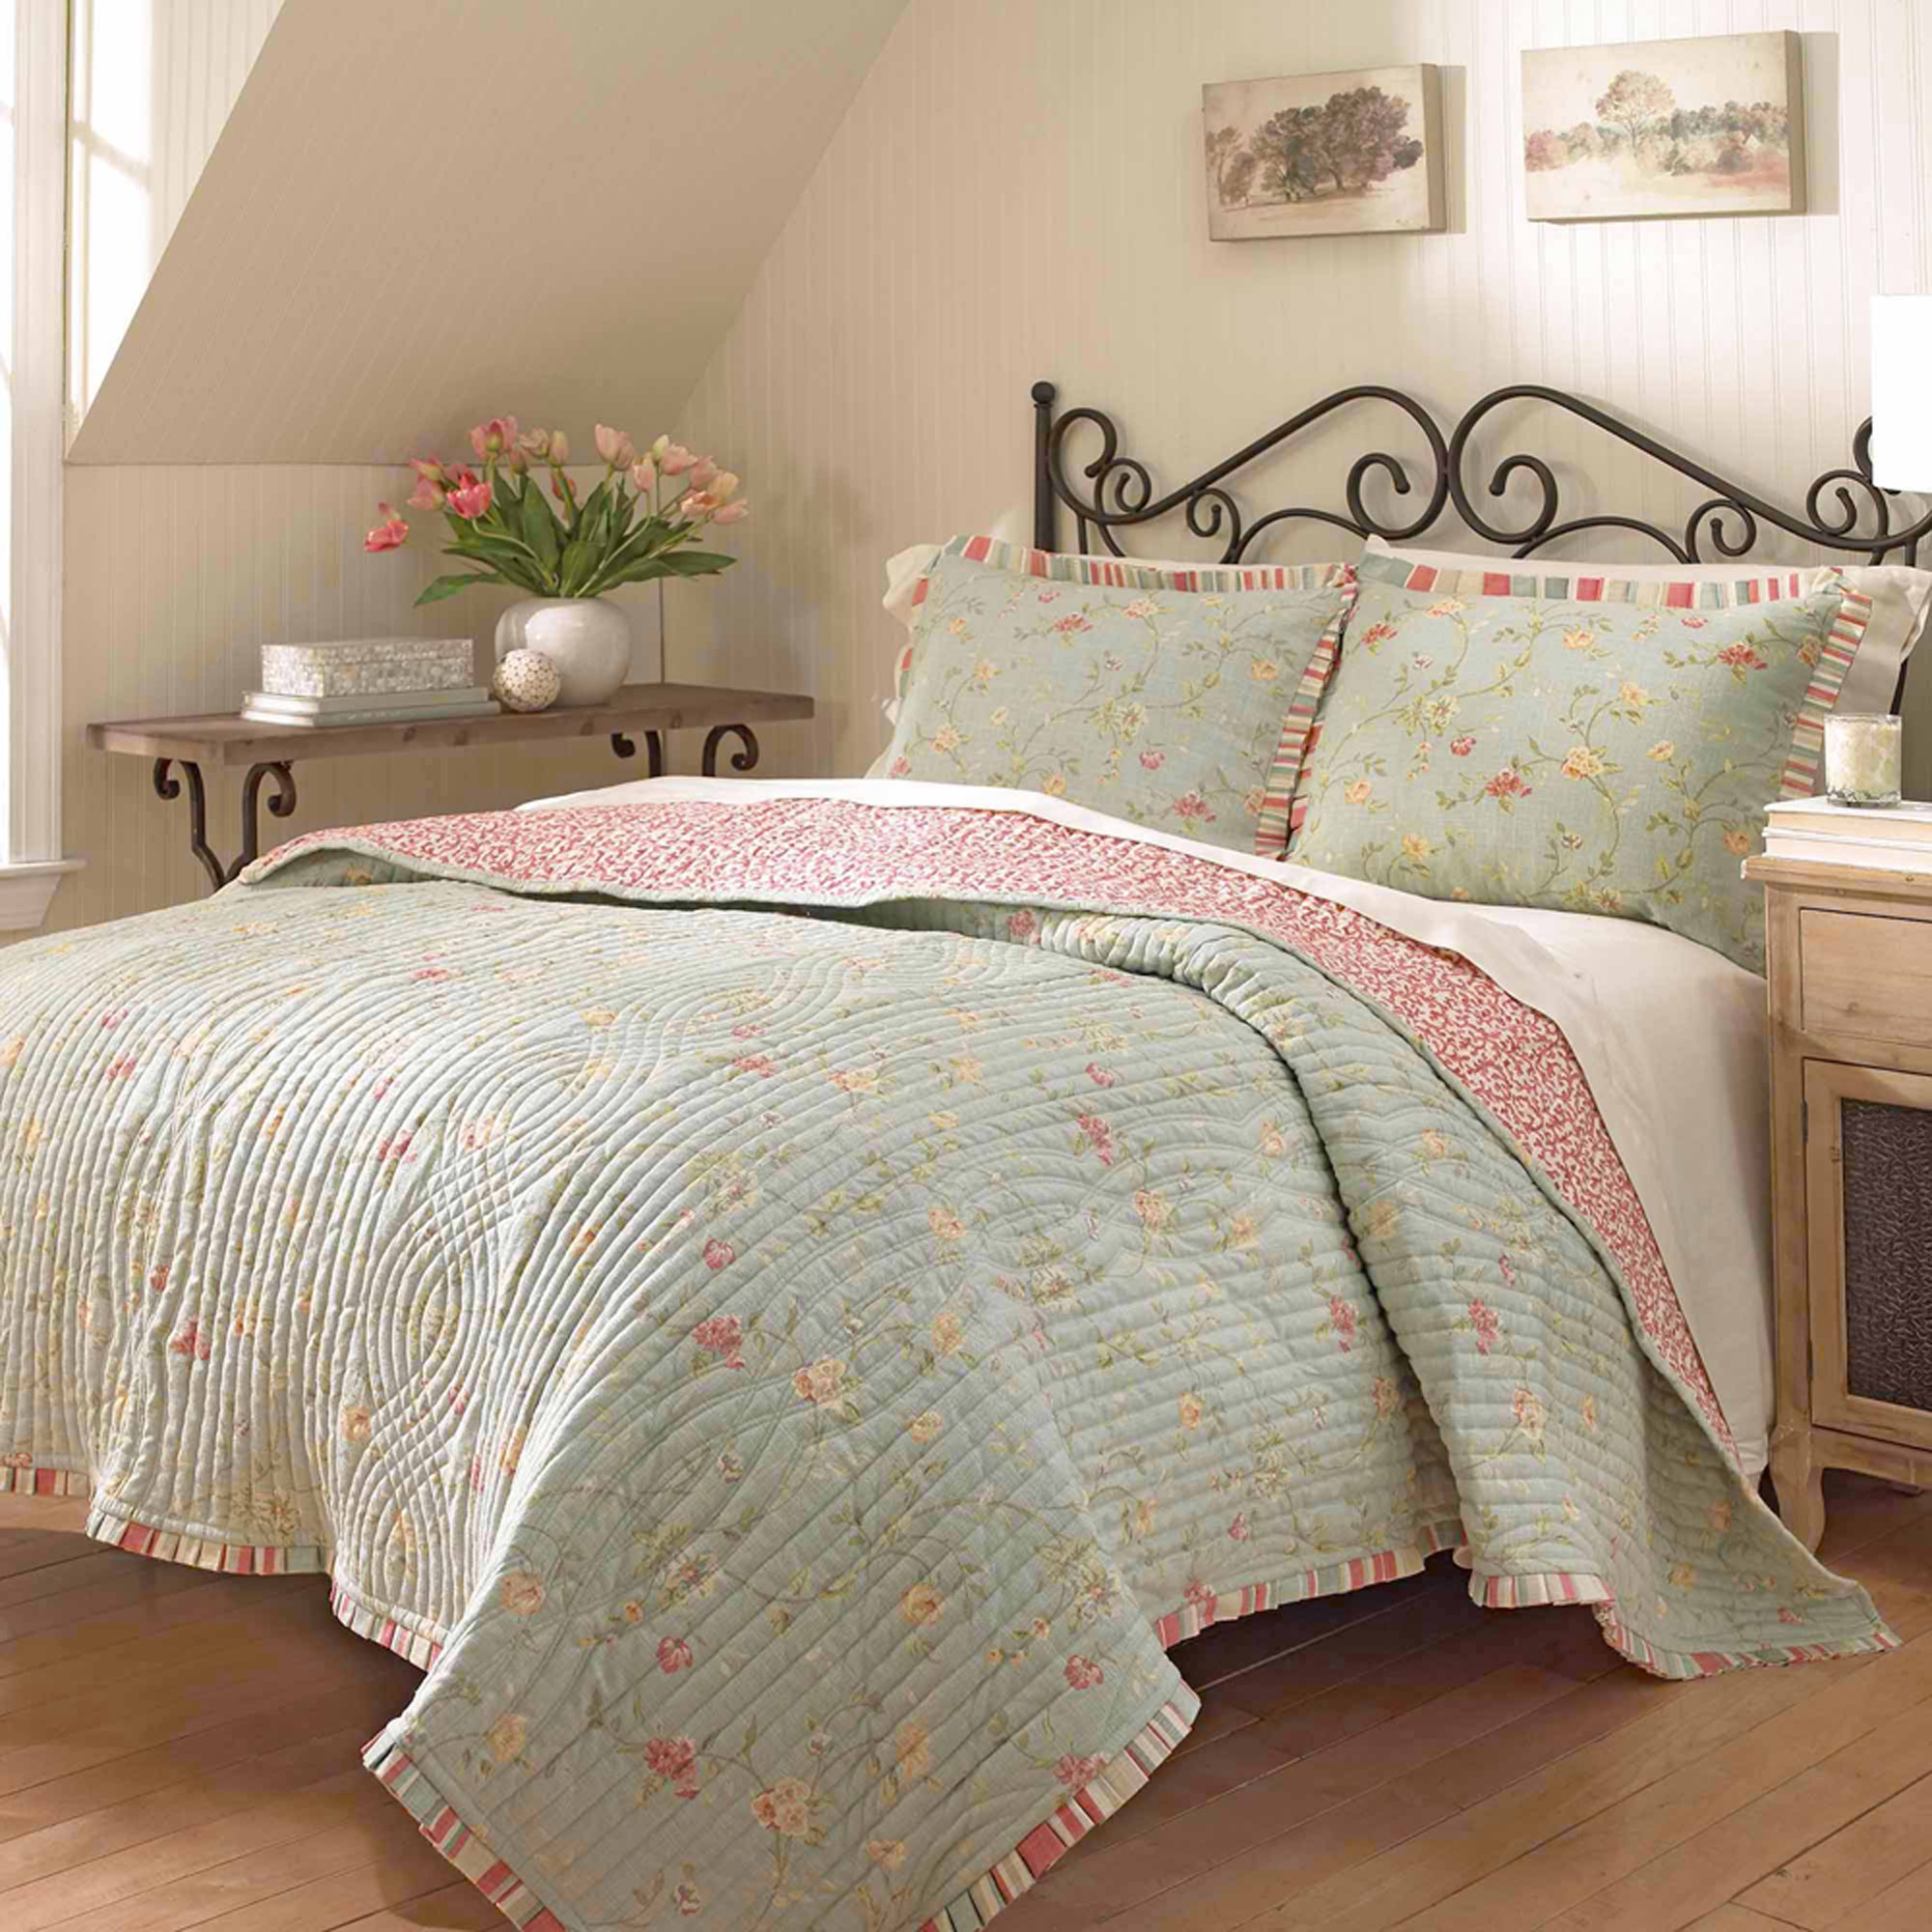 full centre sets improvements comforter quilt of cheap bedding quilts luton loans improvement waverly home size discontinued